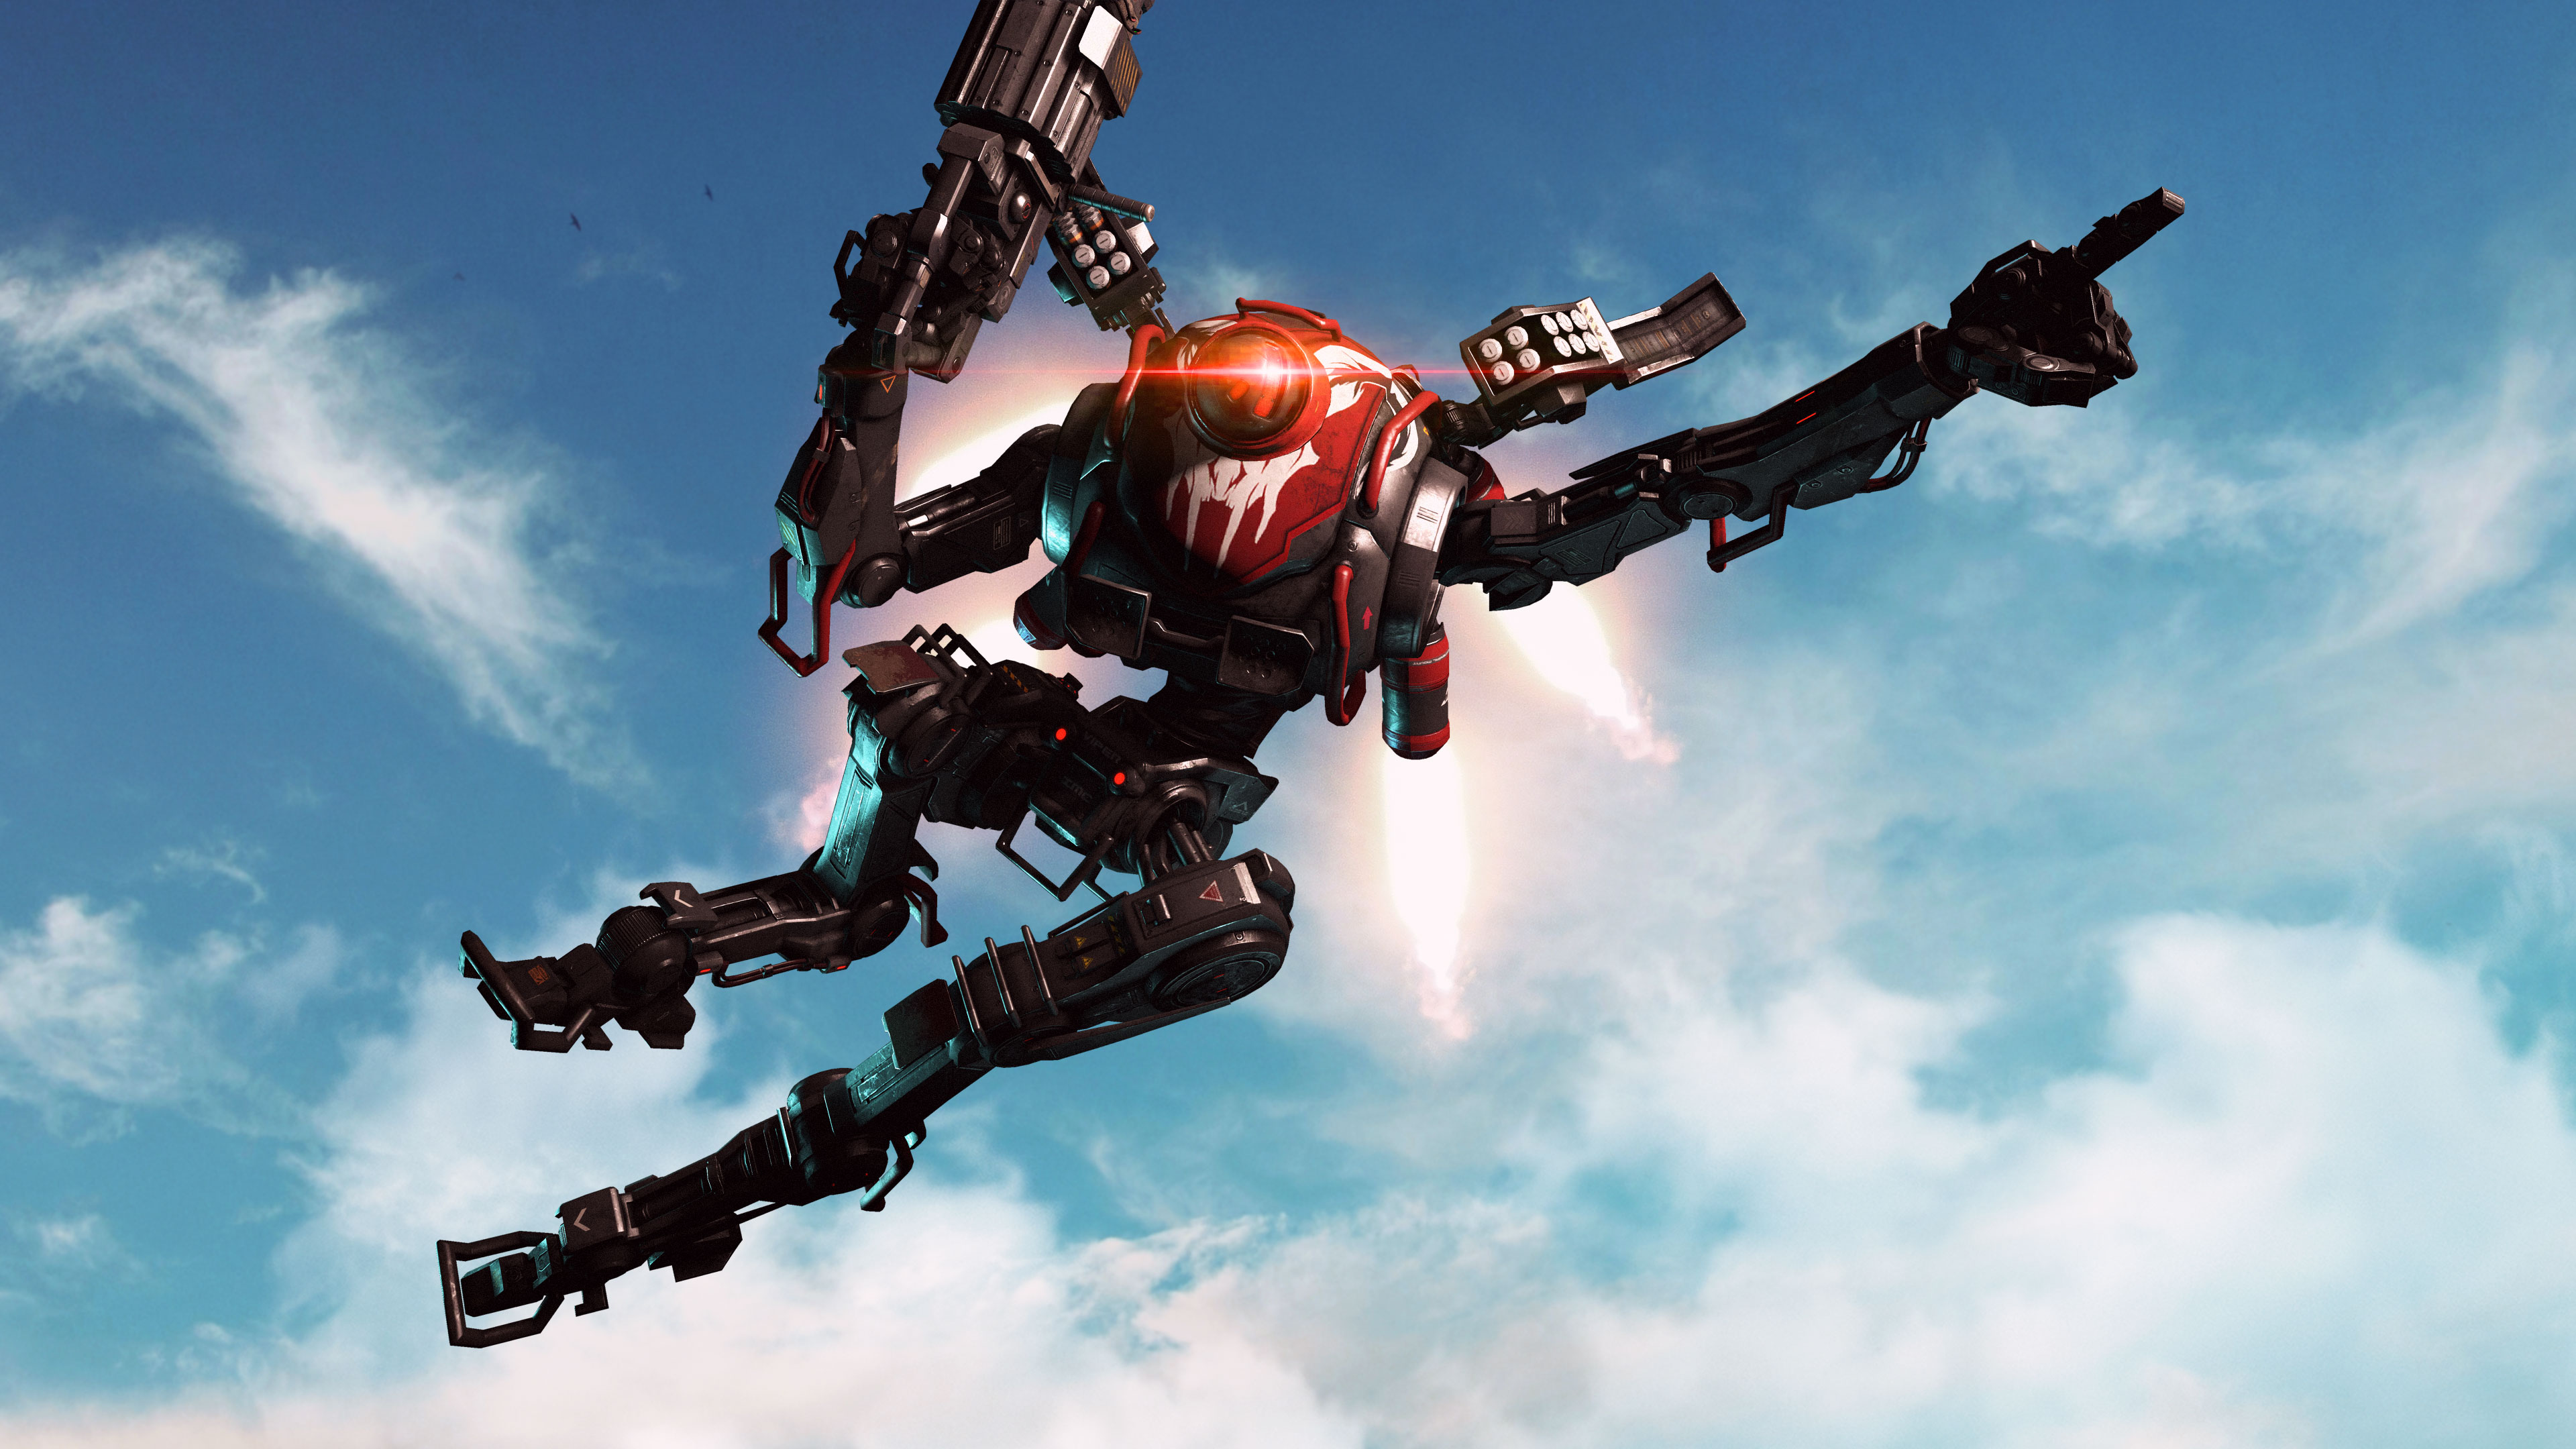 Titanfall 2 Skidrow, HD Games, 4k Wallpapers, Images ...